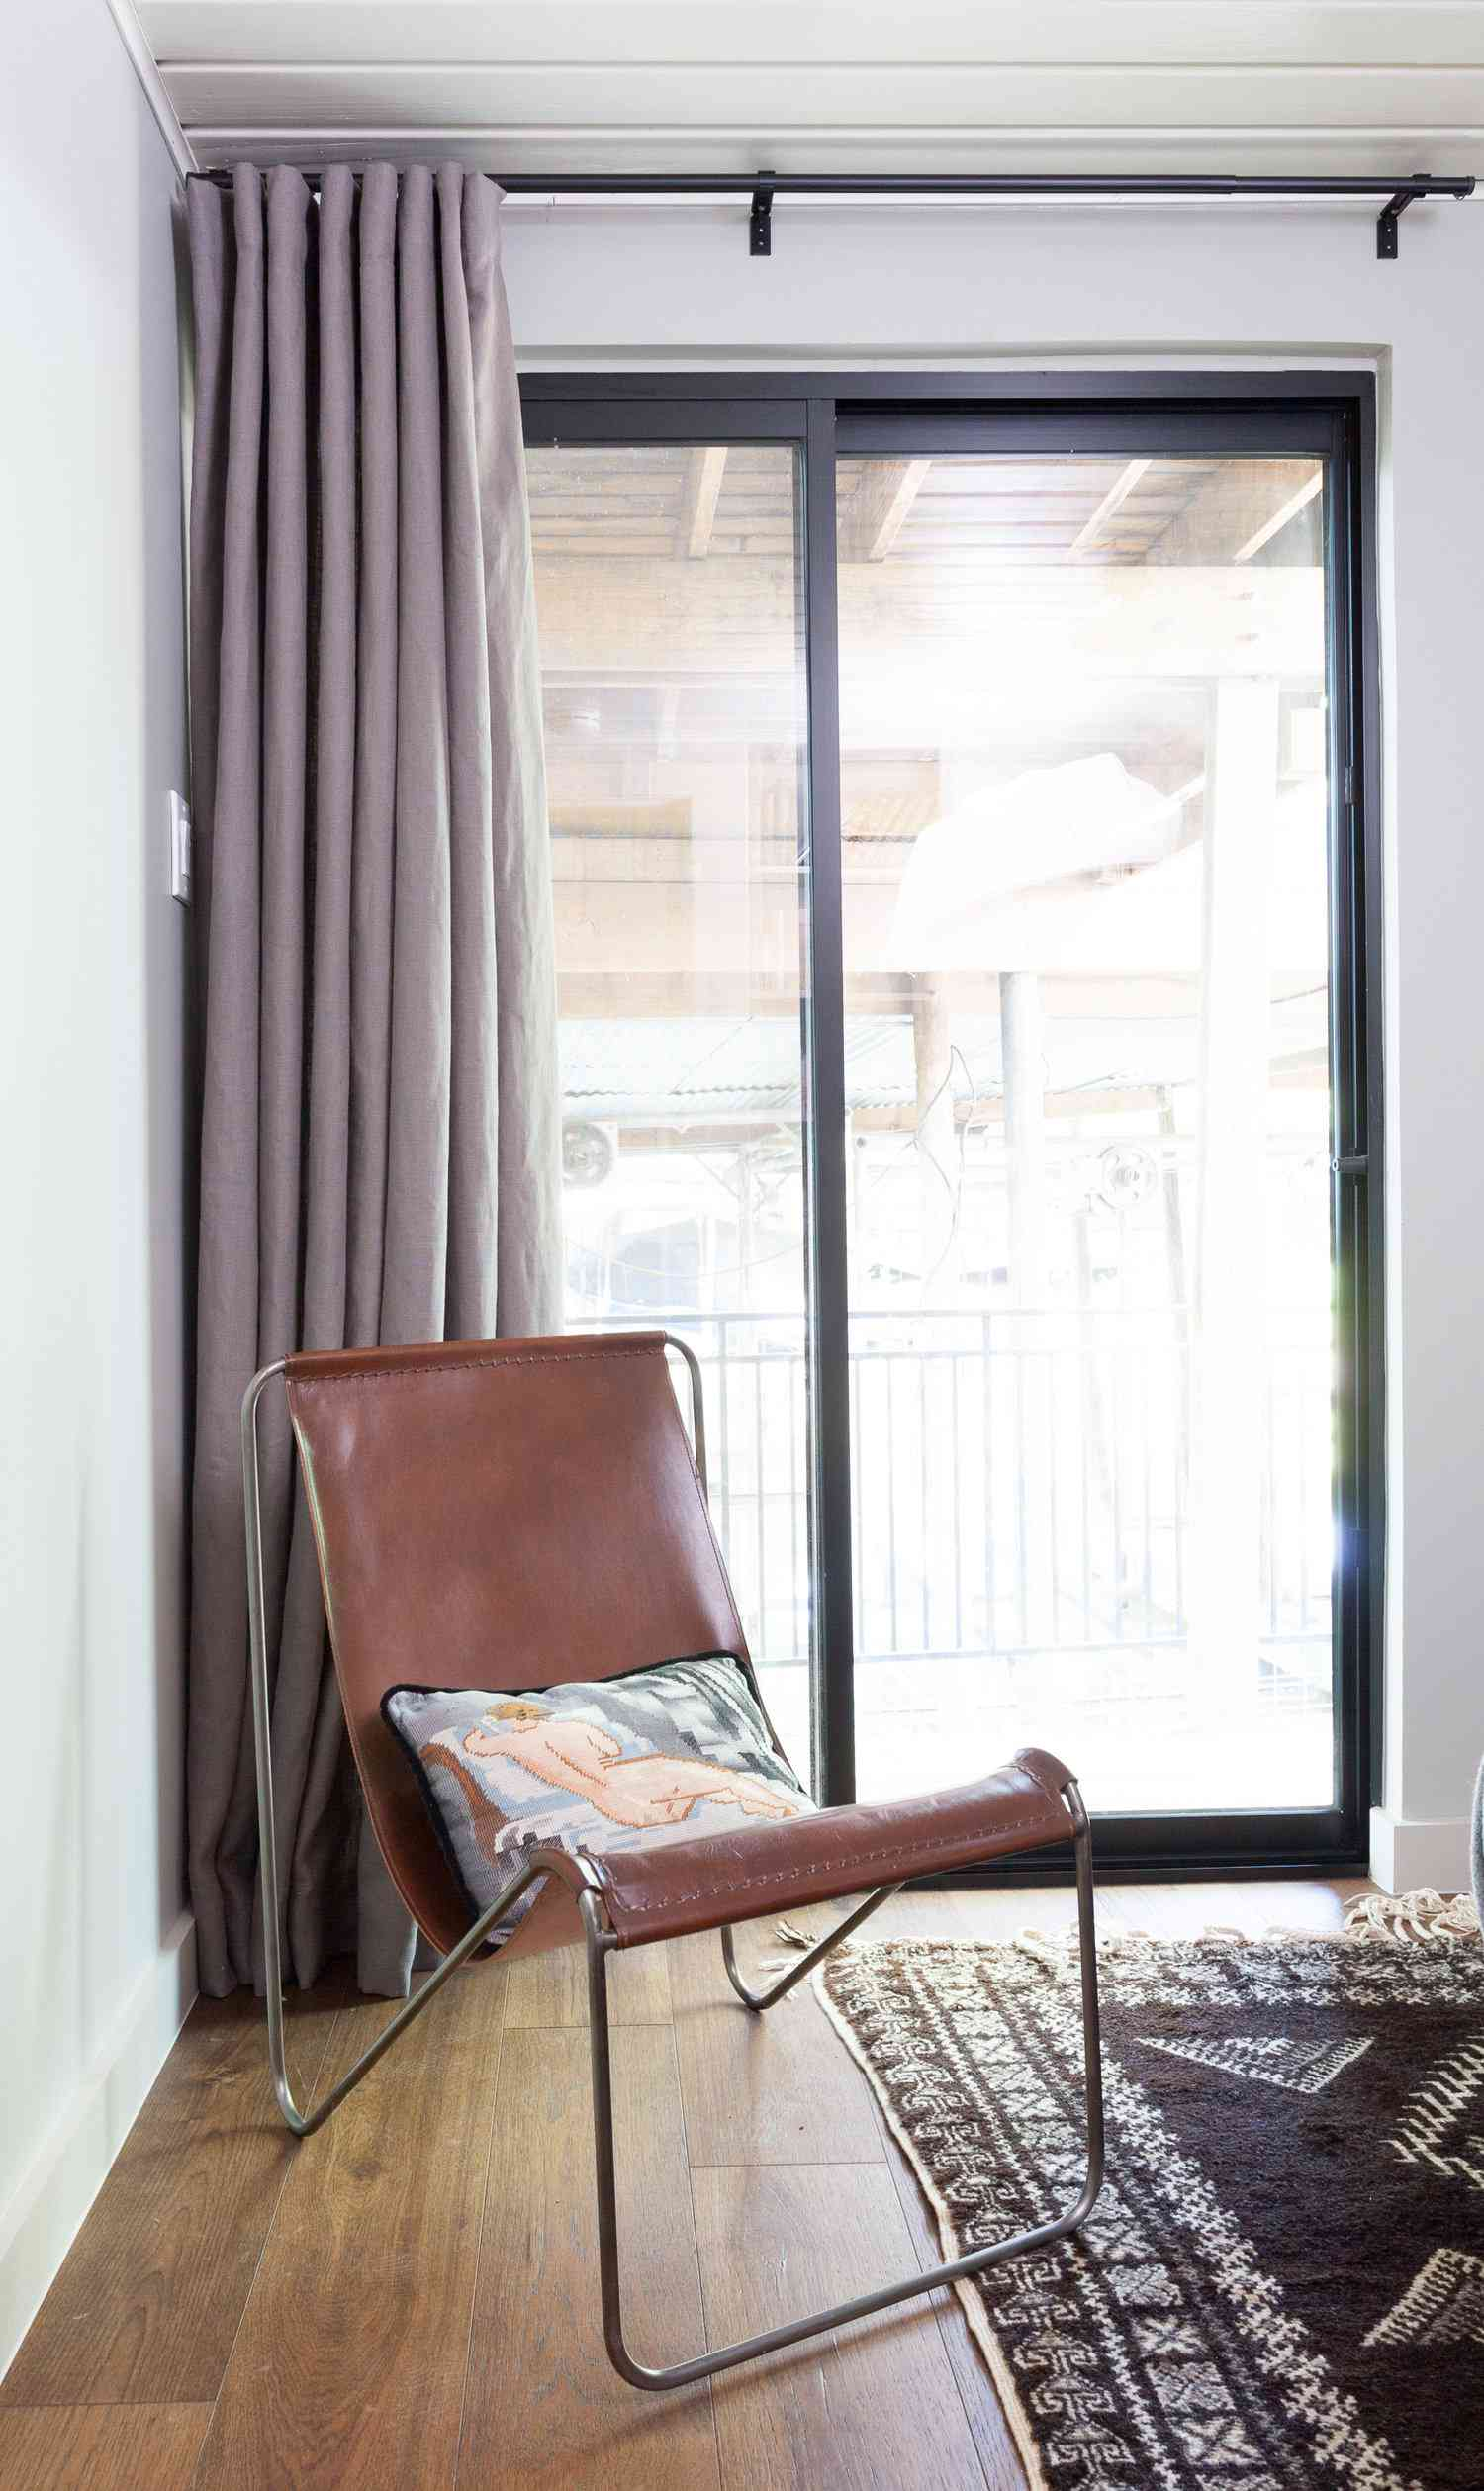 A bedroom corner with lavender drapes and a brown leather chair